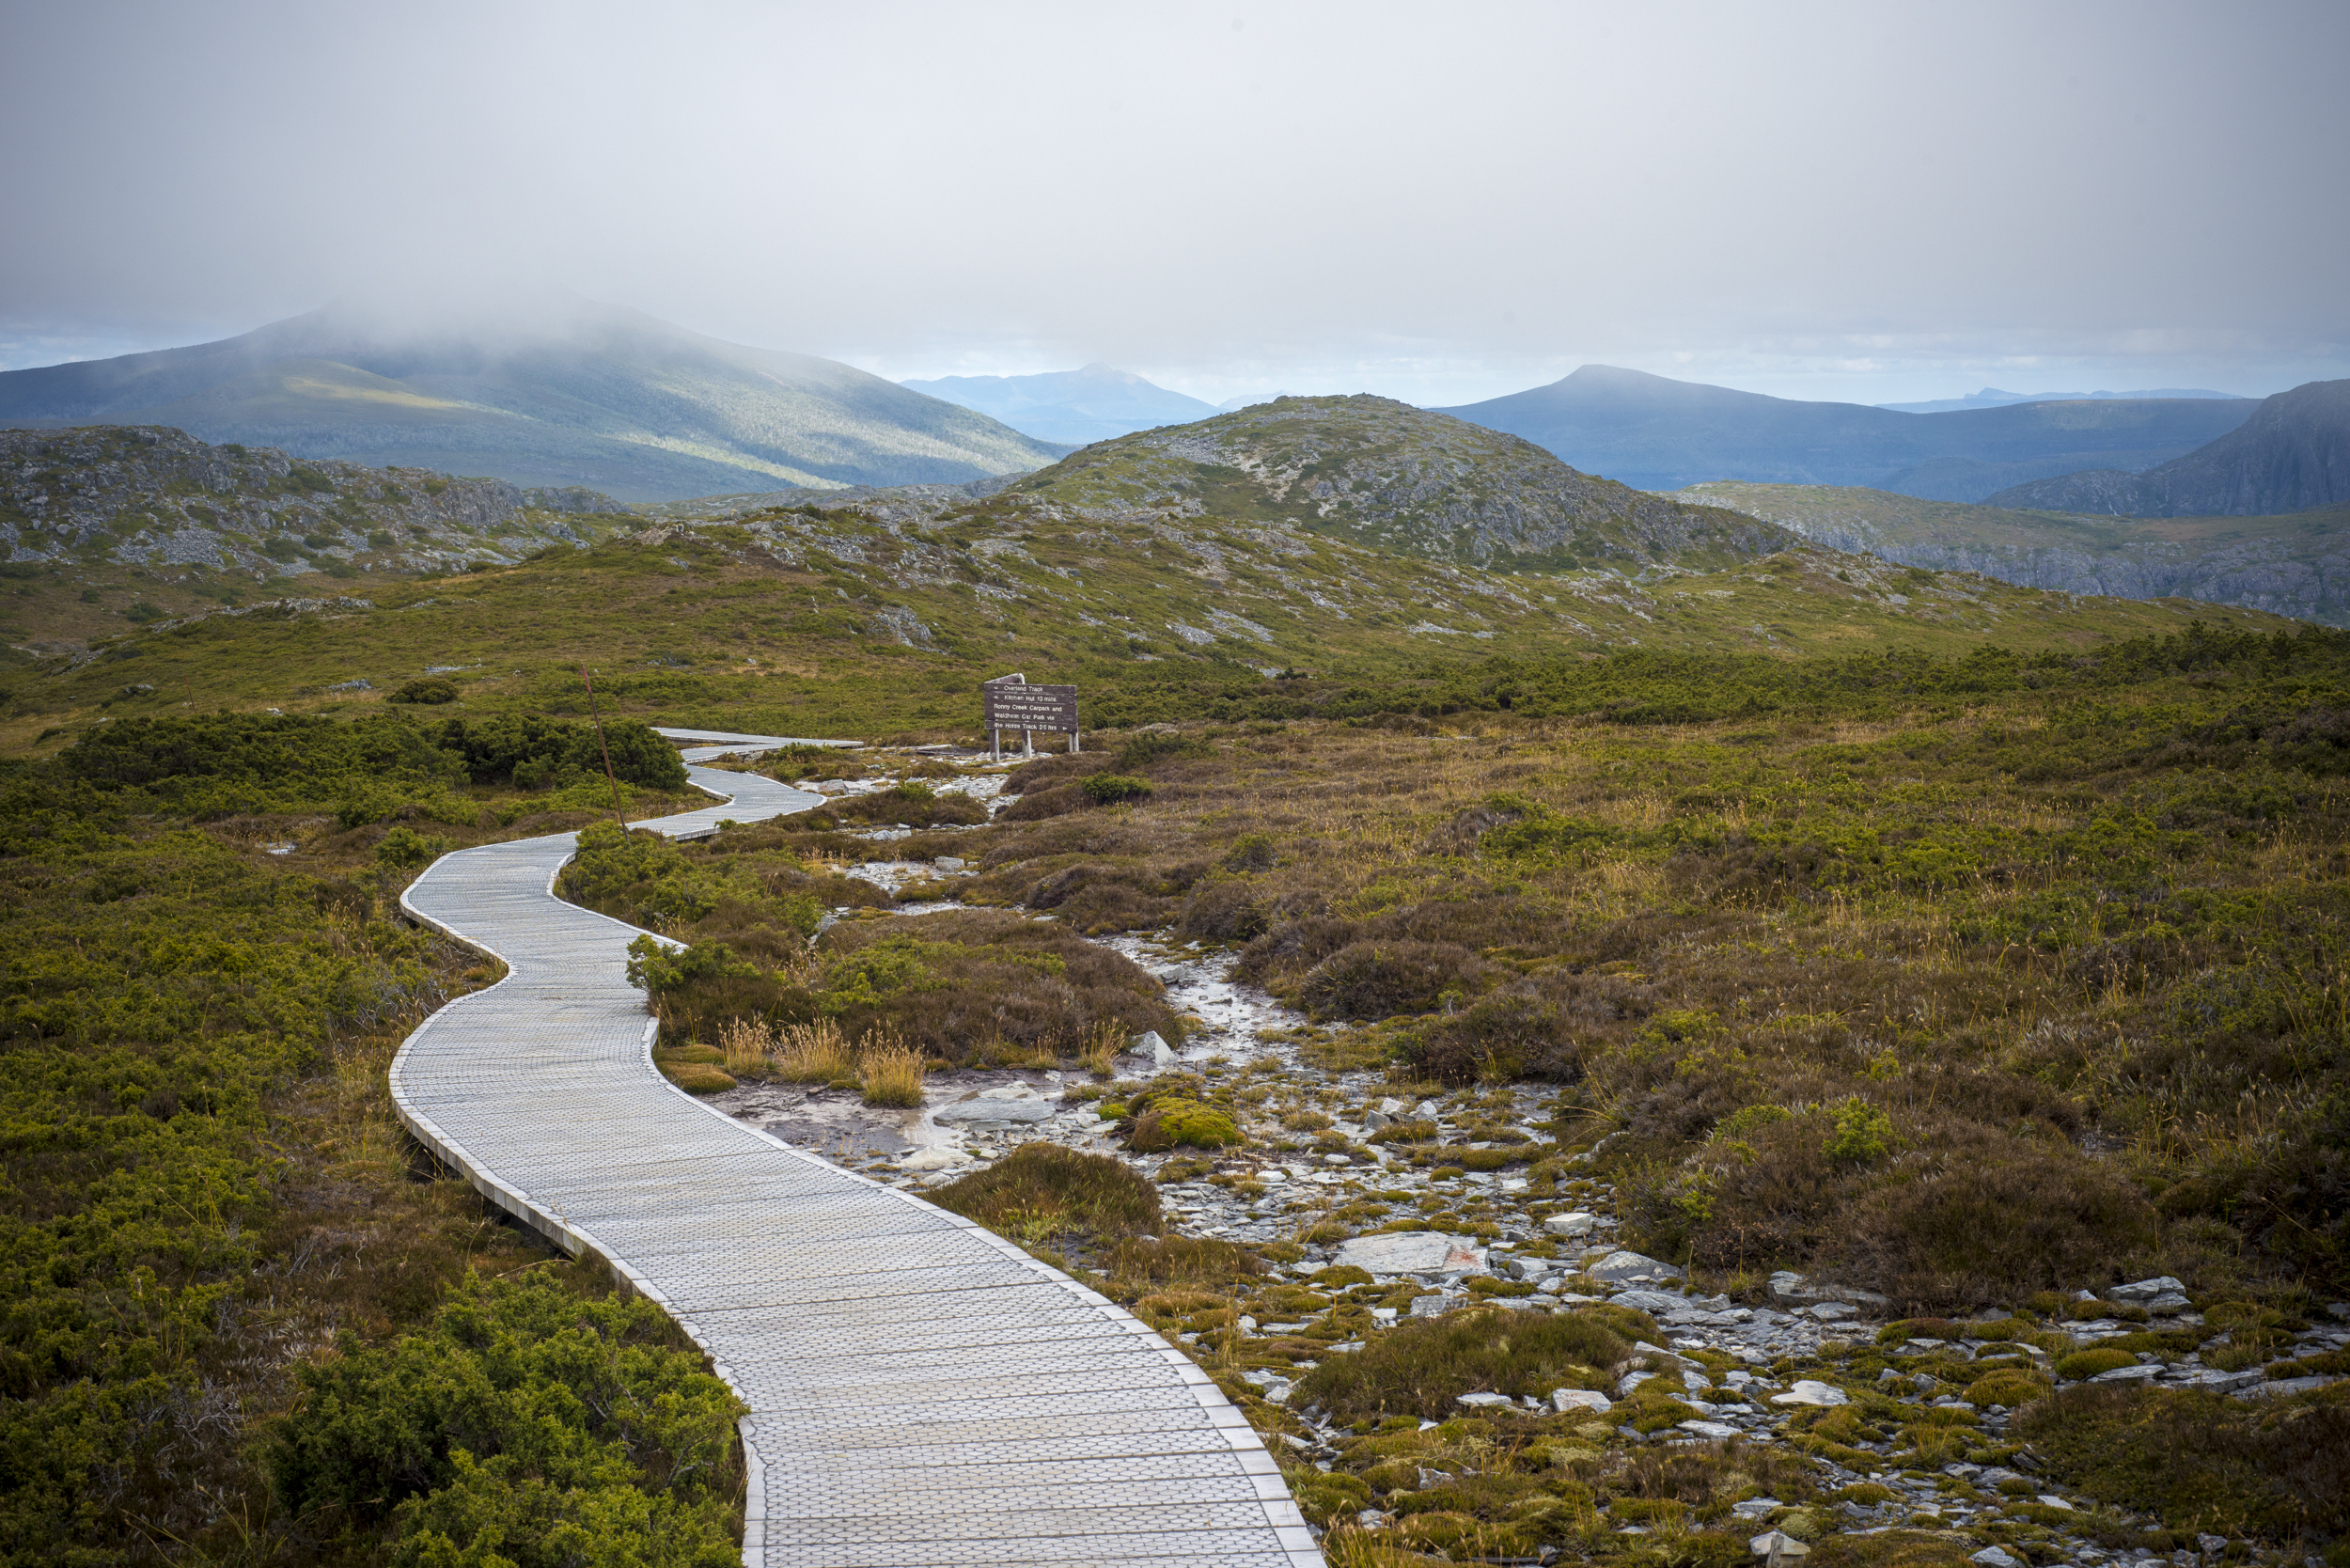 Part of the Overland Track, Cradle Mountain, Tasmania